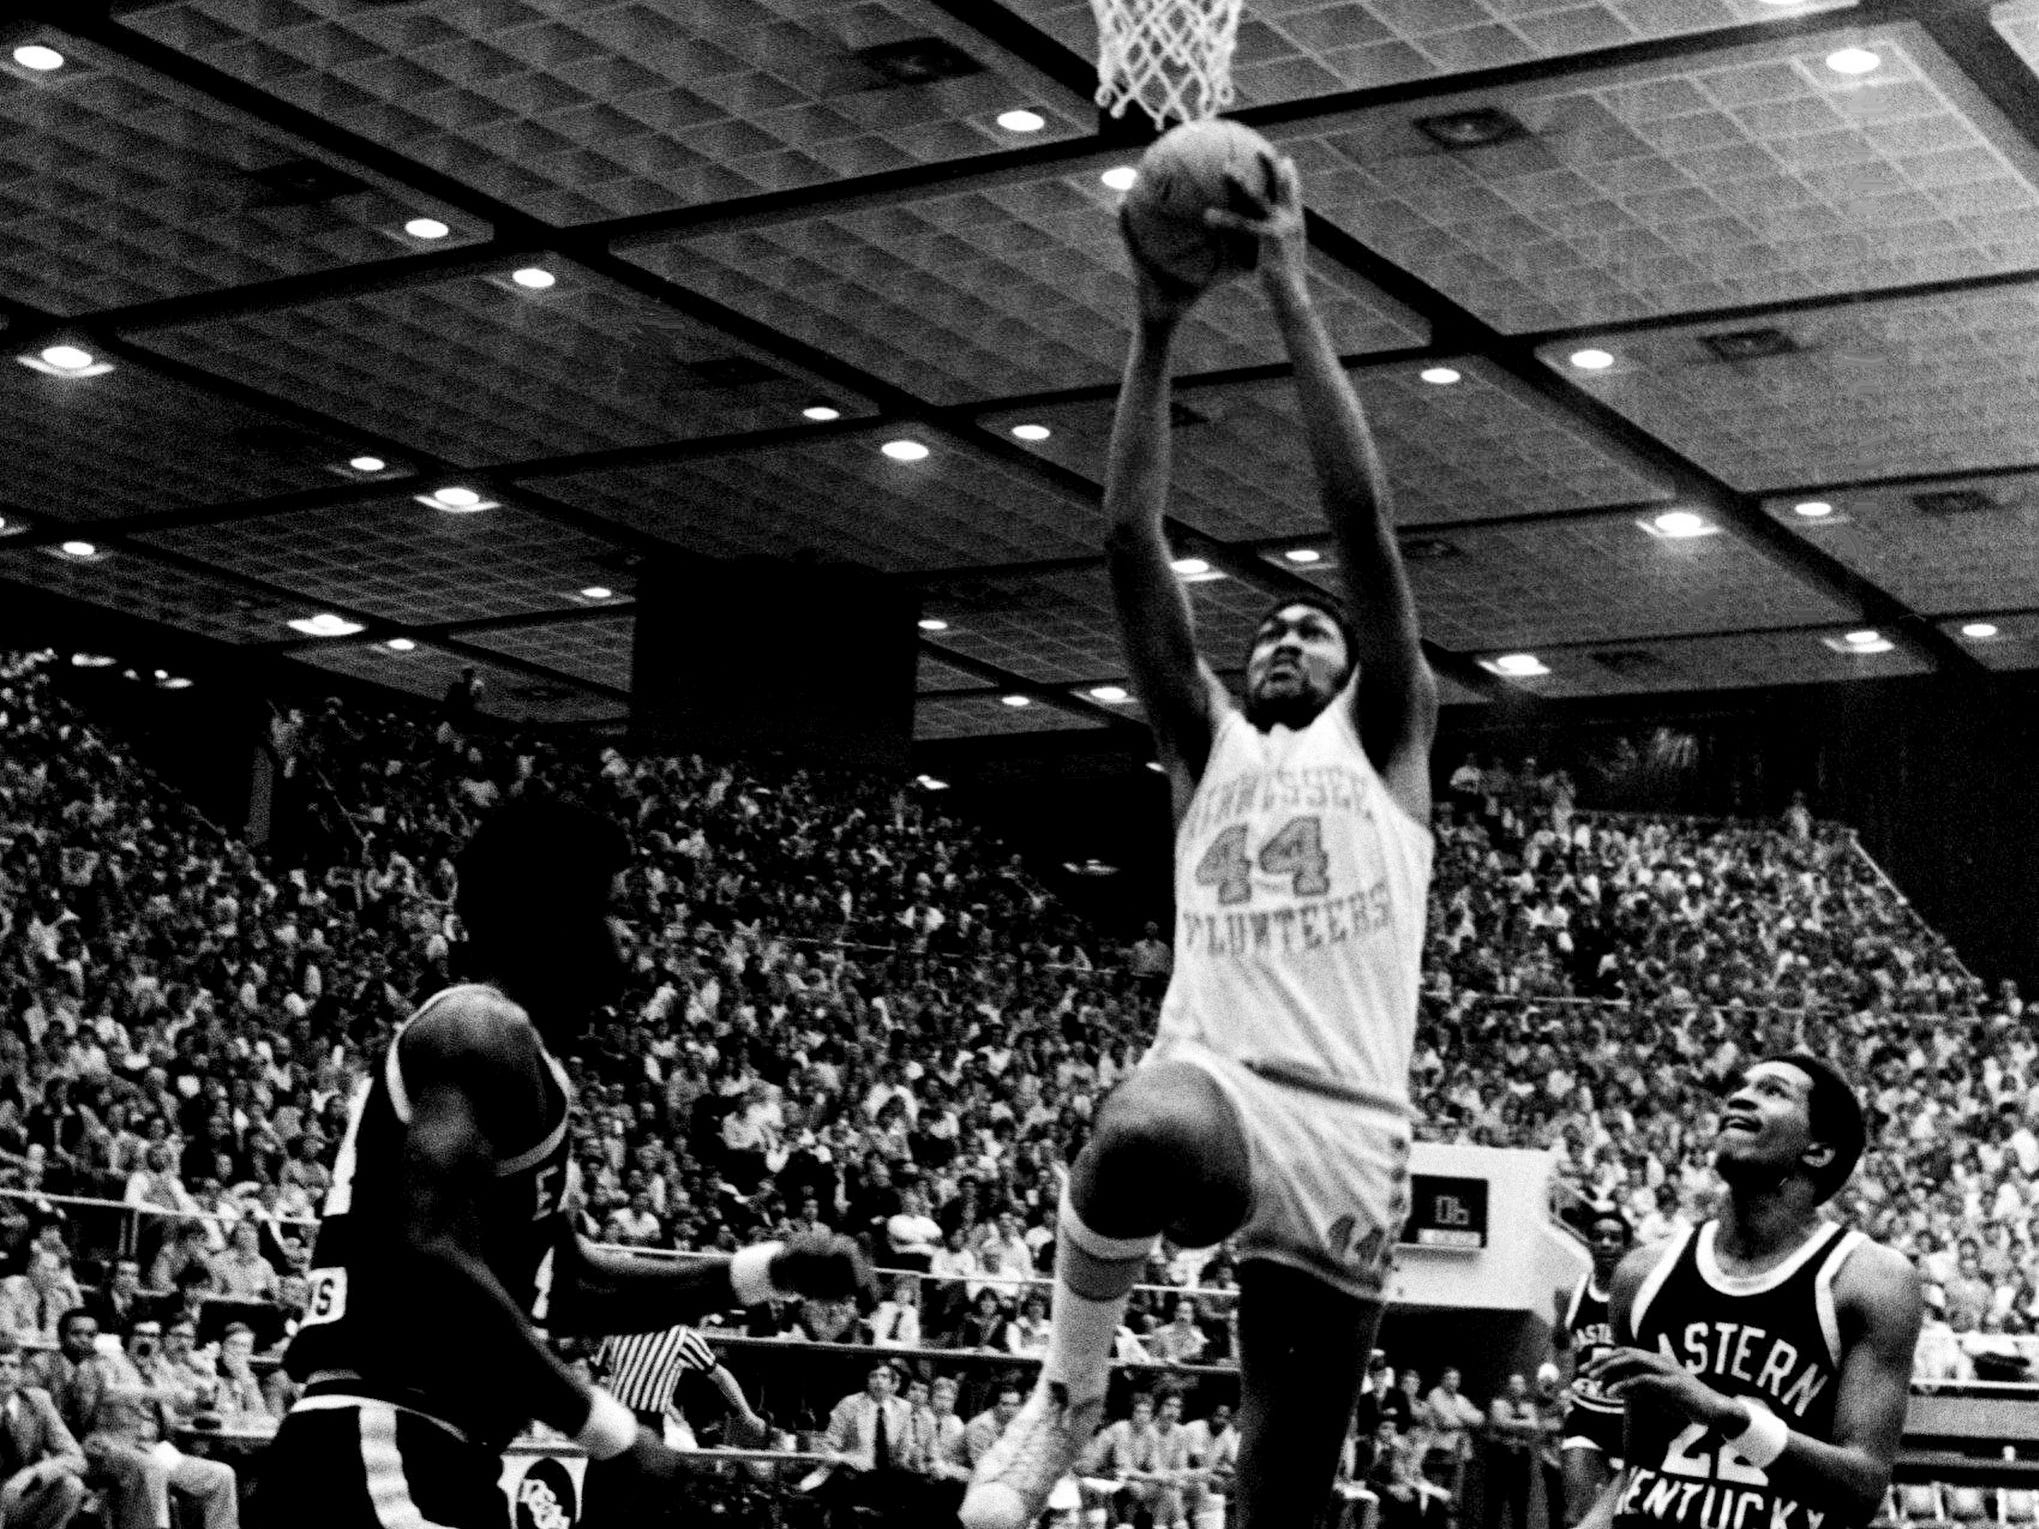 Tennessee sophomore center Howard Wood (44) driving to slam one home as the Vols defeated Eastern Kentucky 97-81 in the NCAA Mideast Regional tournament at MTSU's Murphy Center in Murfreesboro March 9, 1979.